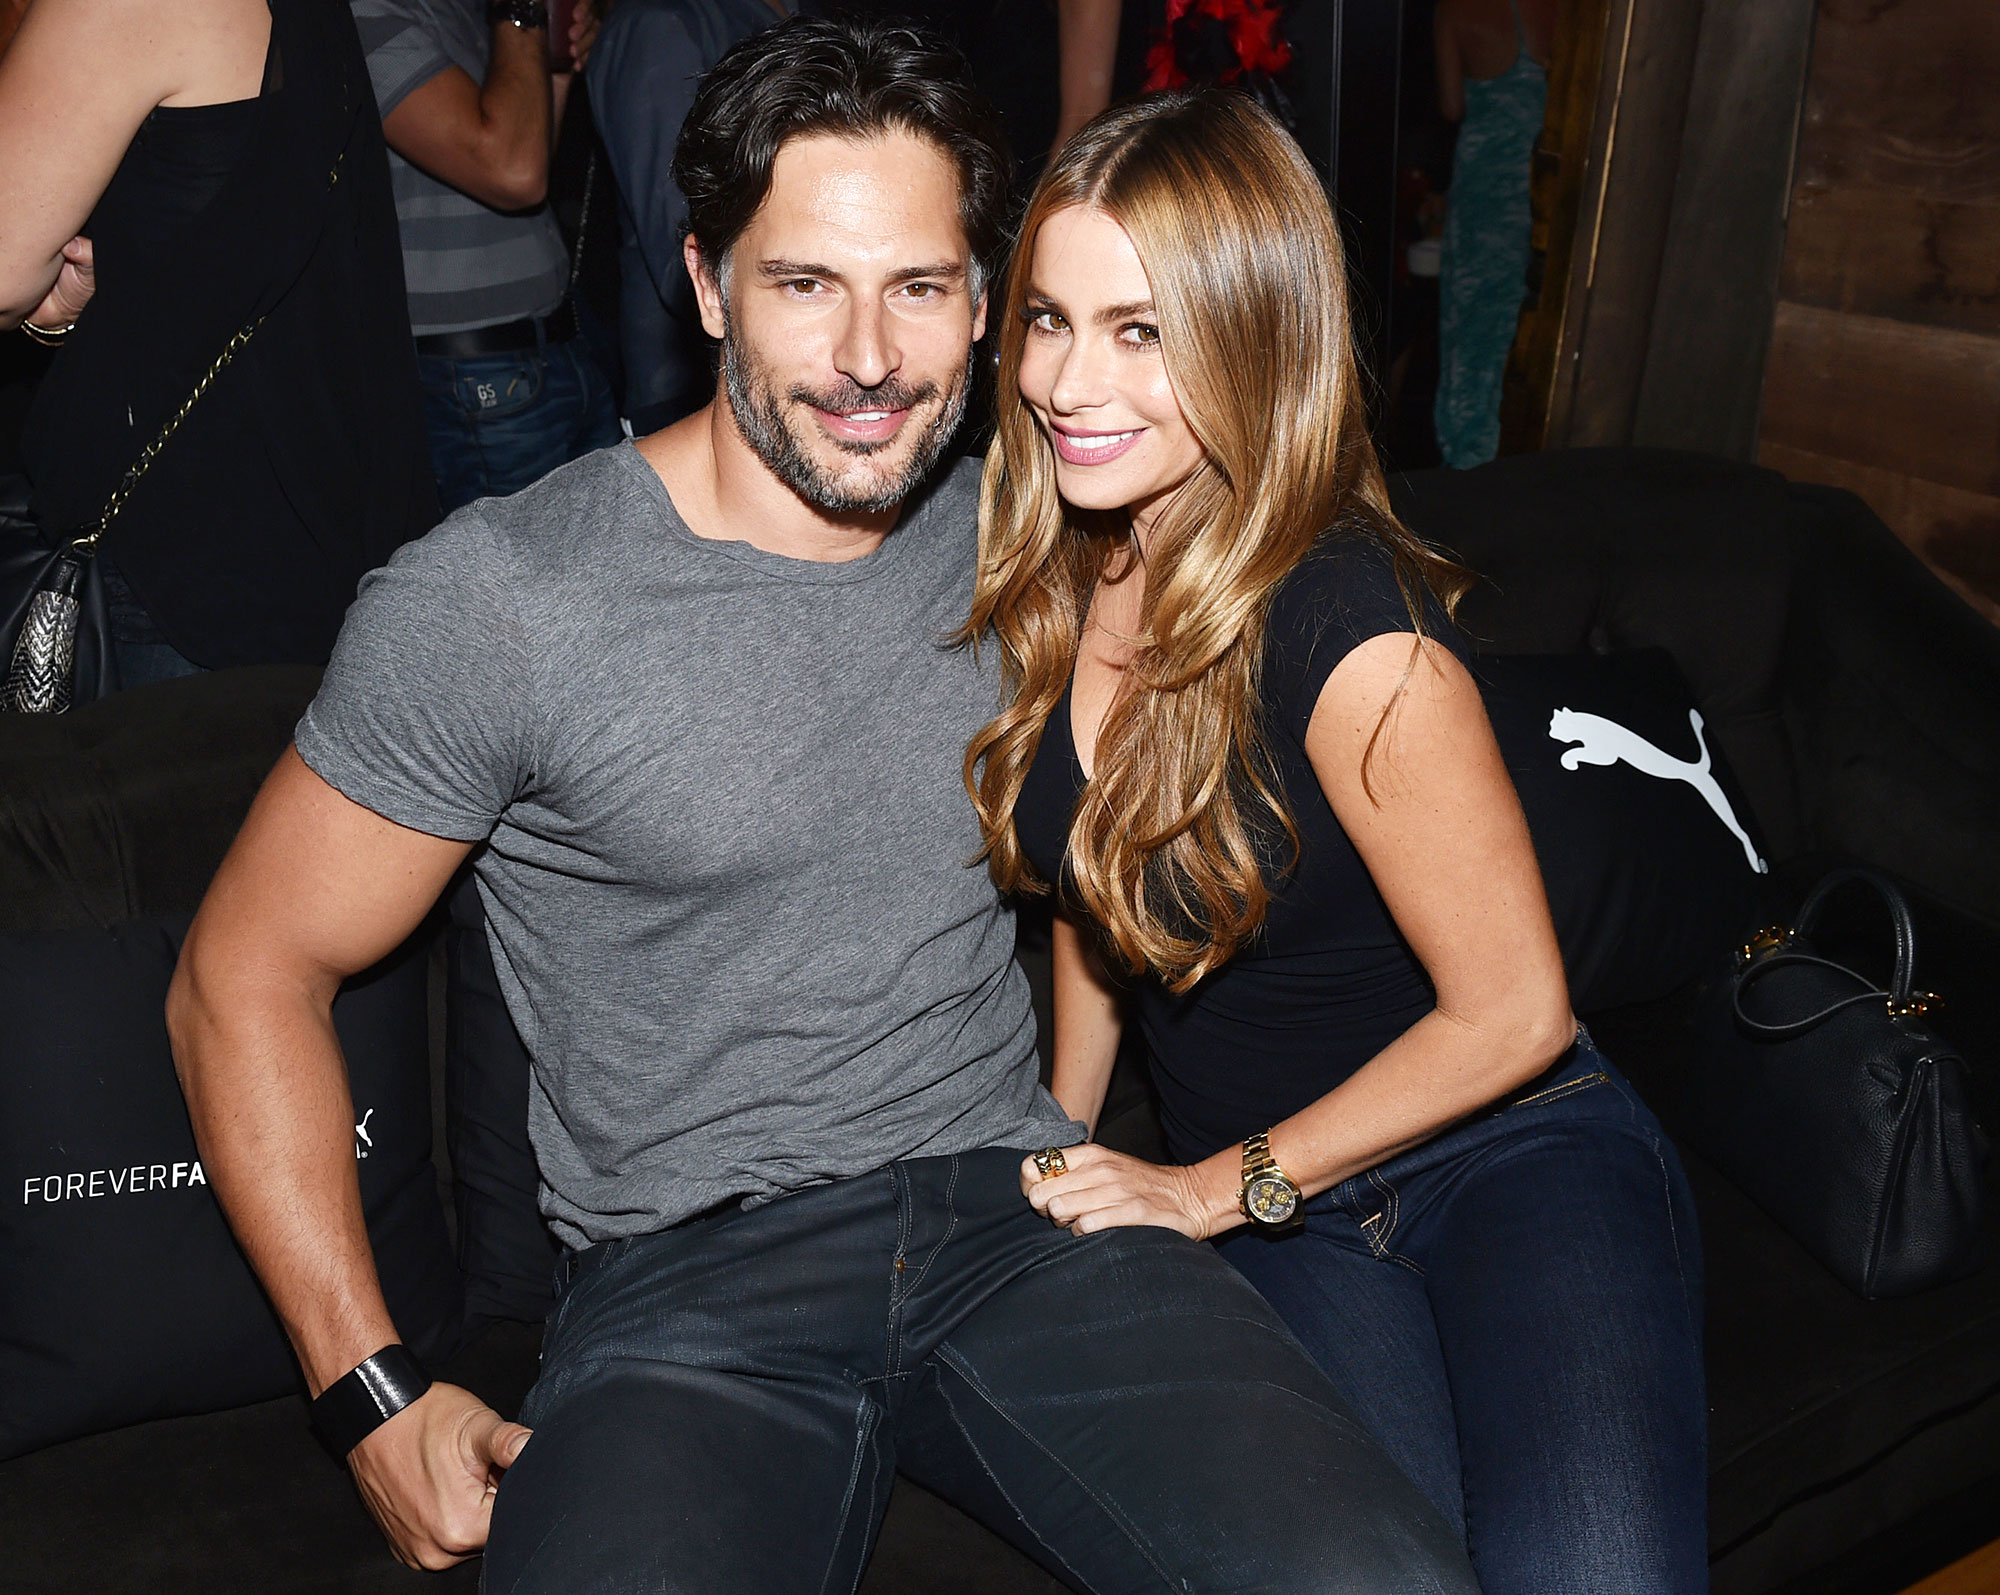 Joe Manganiello and Sofia Vergara in 2014 Joe Manganiello Recalls Falling in Love With Wife Sofia Vergara